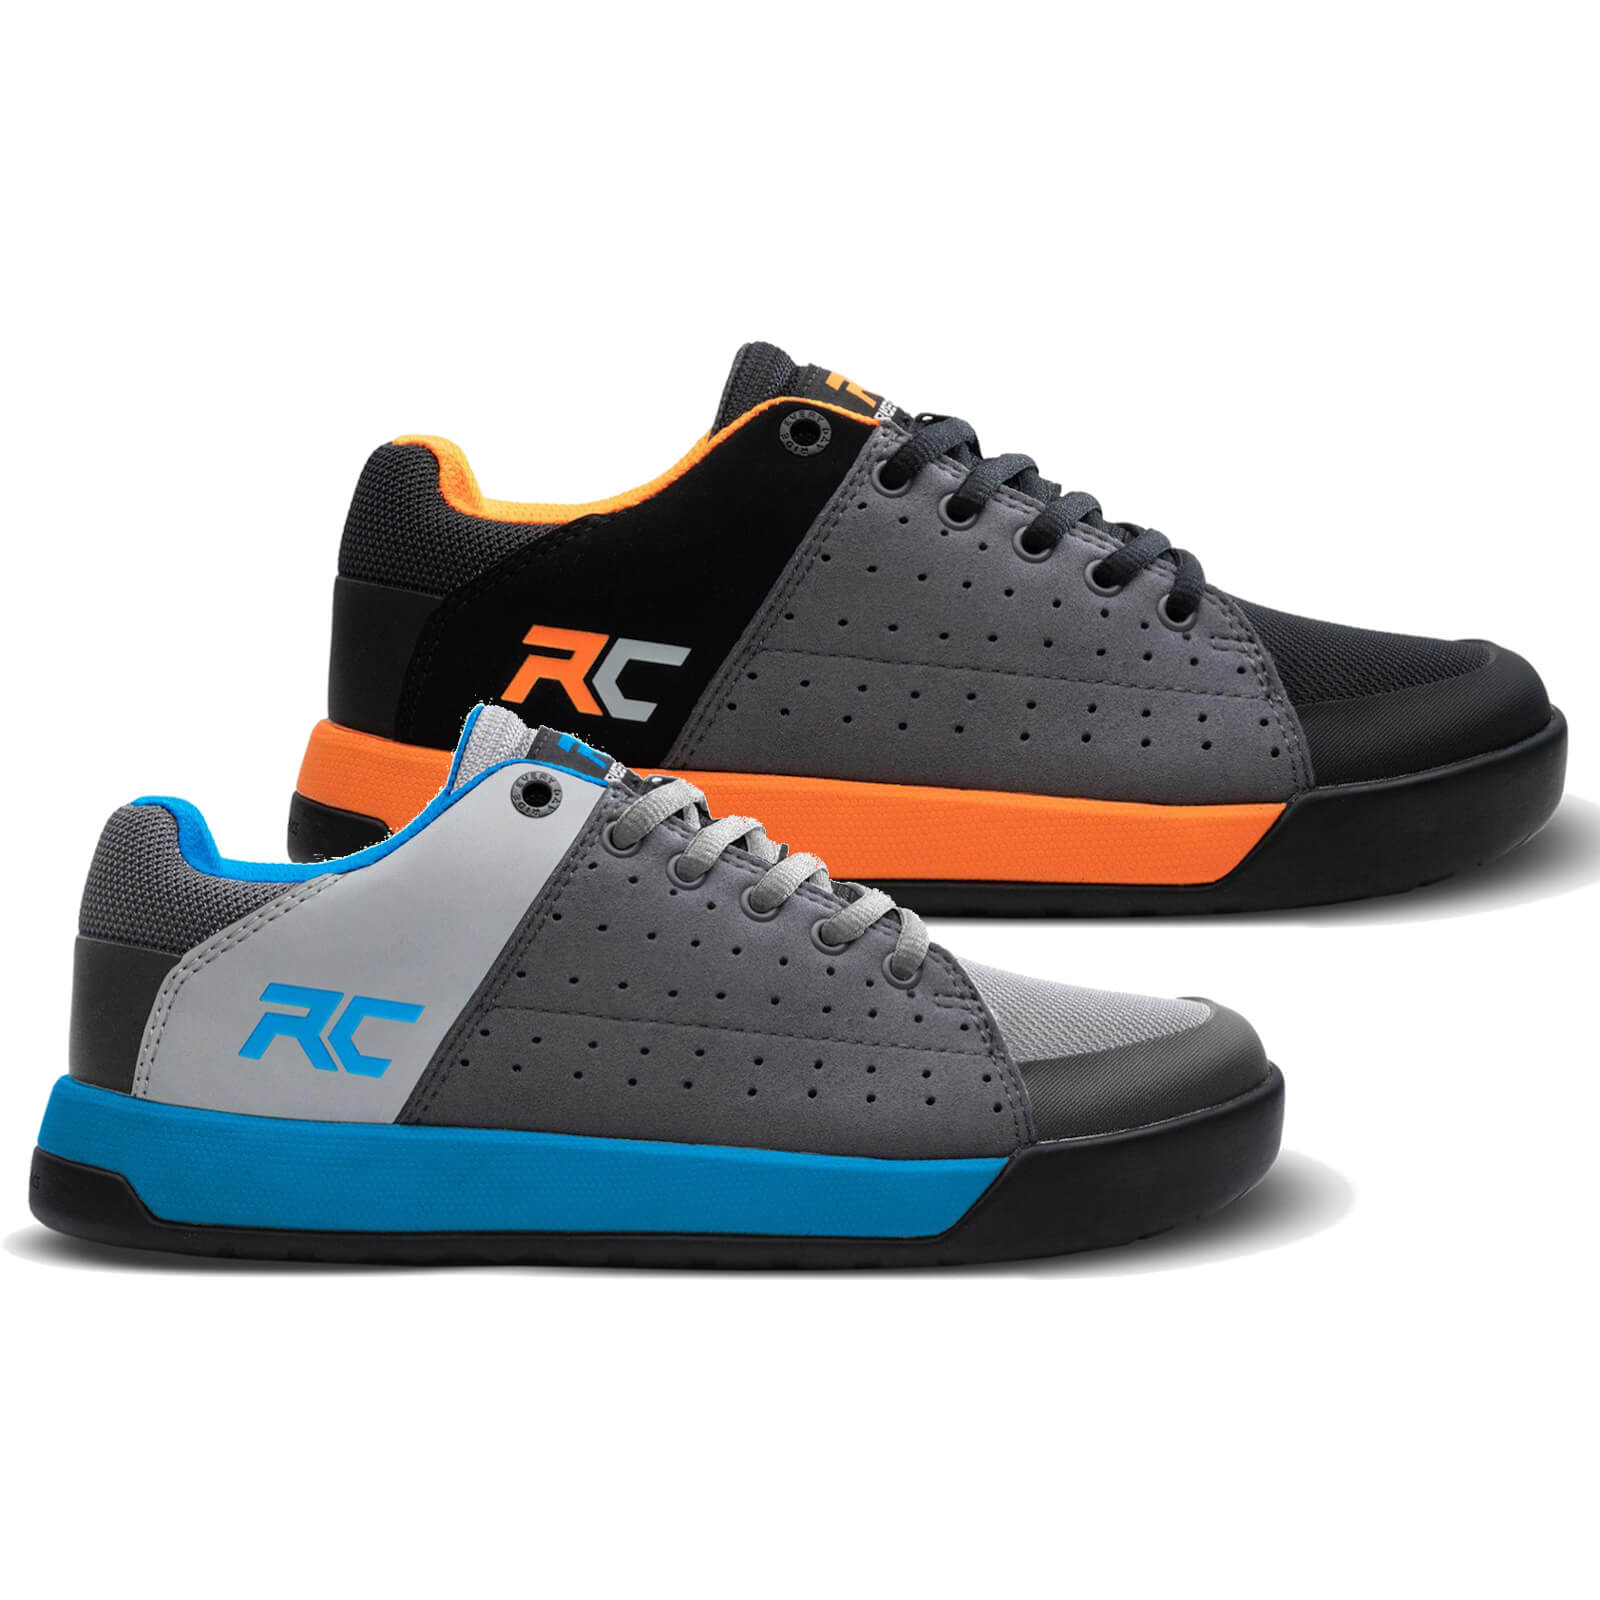 Ride Concepts Youth Livewire Flat MTB Shoes - UK 4/EU 37 - Charcoal/Orange